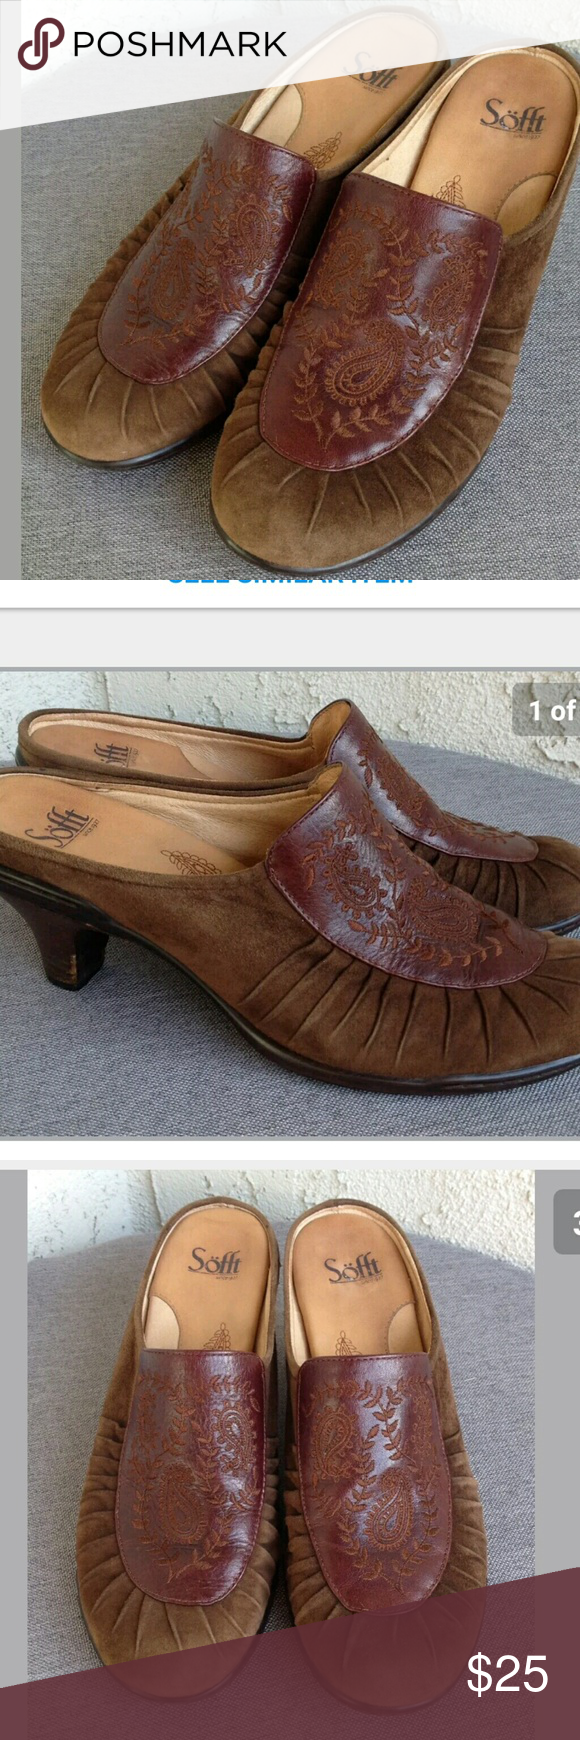 pin sofft leather m mules and heeled brown comforter clogs tooled suede comfort shoes